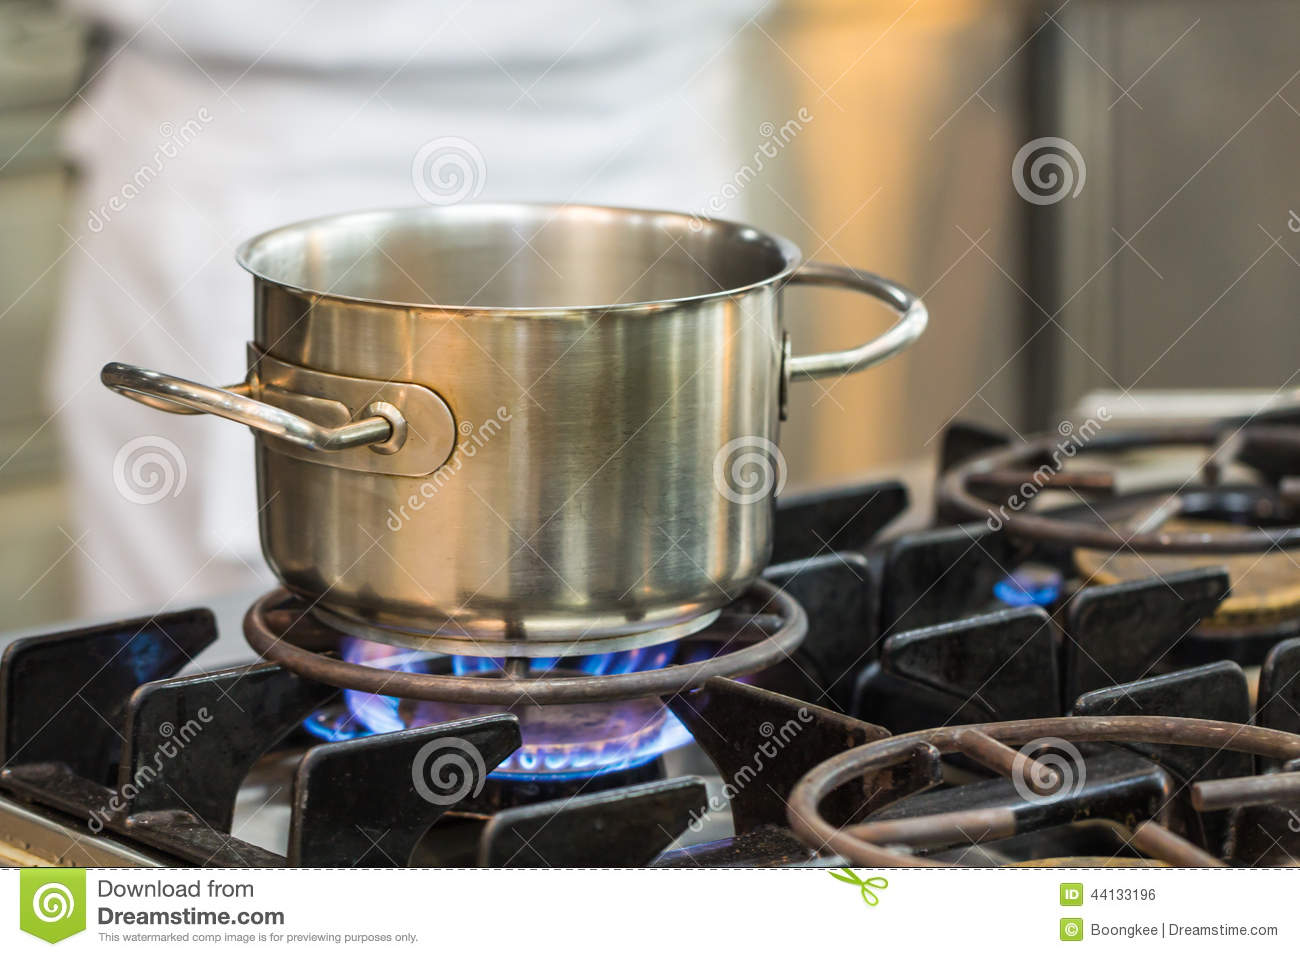 Stainless pot cooking